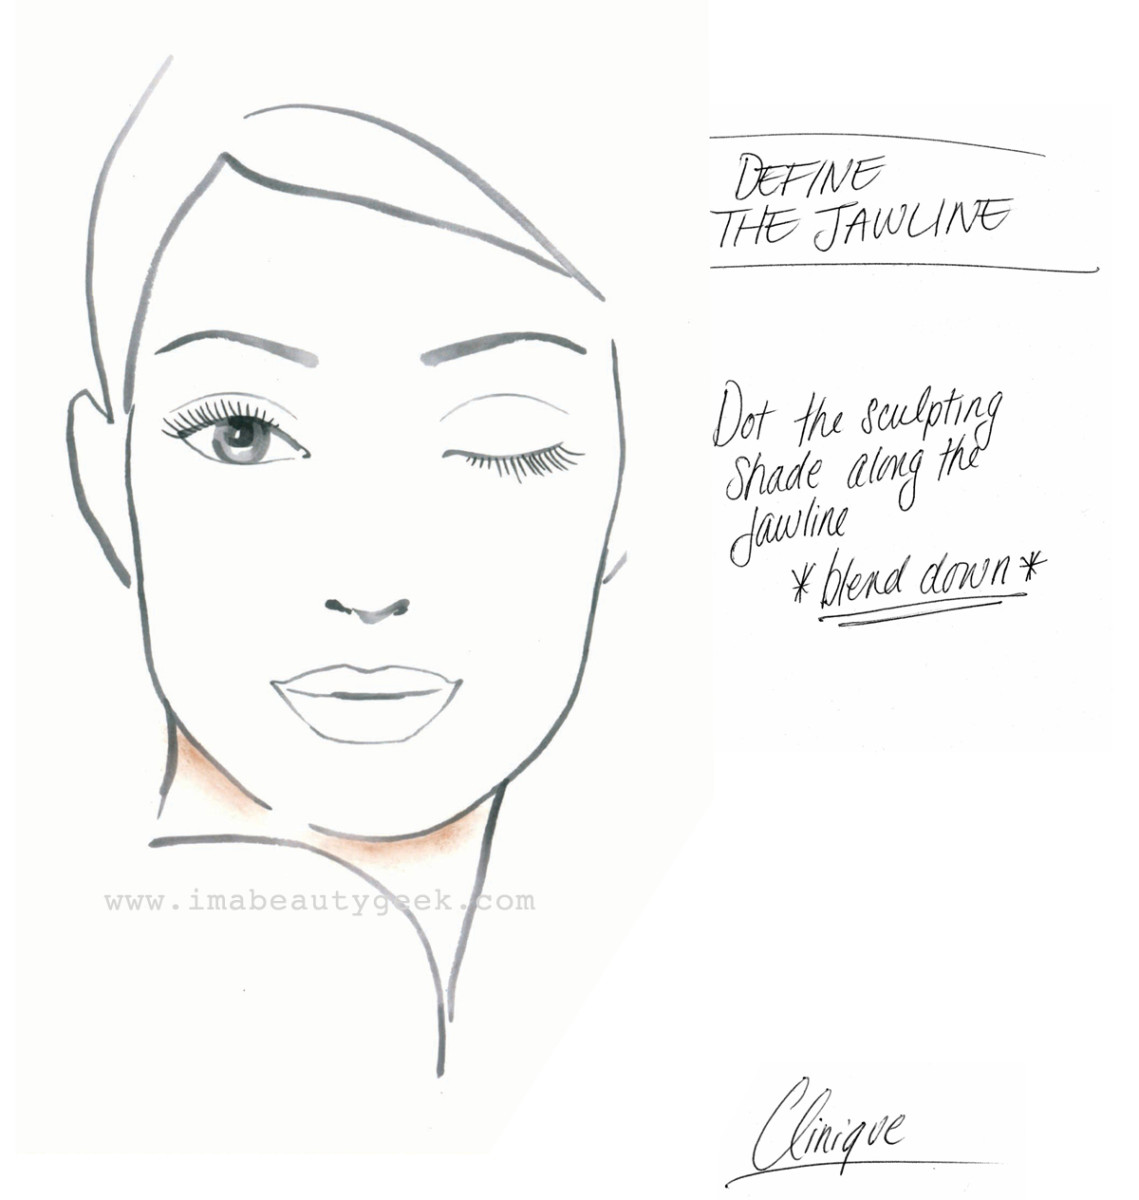 Clinique Chubby Stick Sculpting Highlight and Contour_how to define the jawline